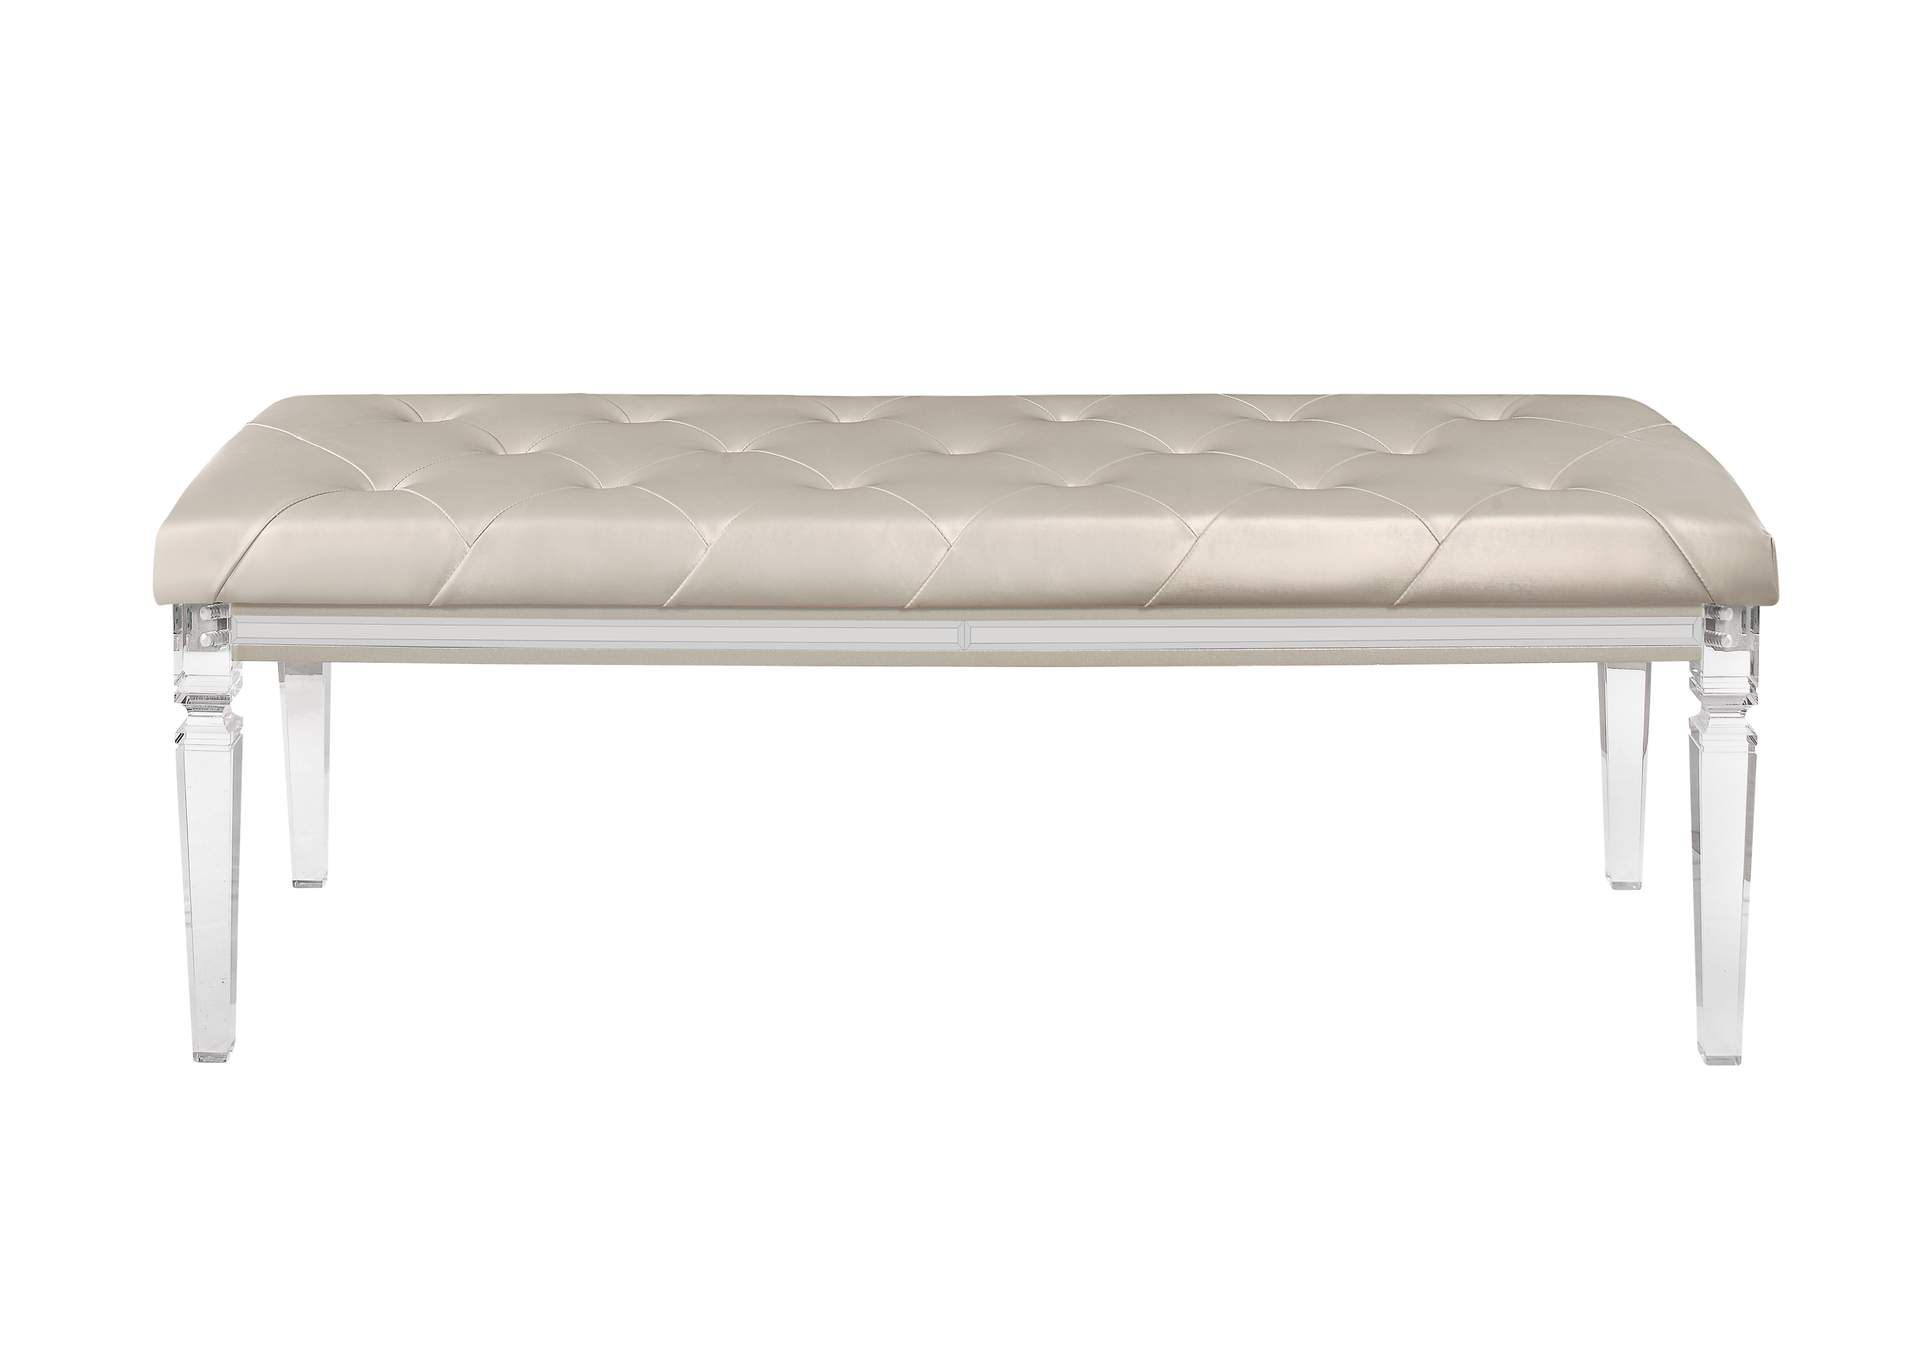 Paris Champagne Bench,Global Furniture USA